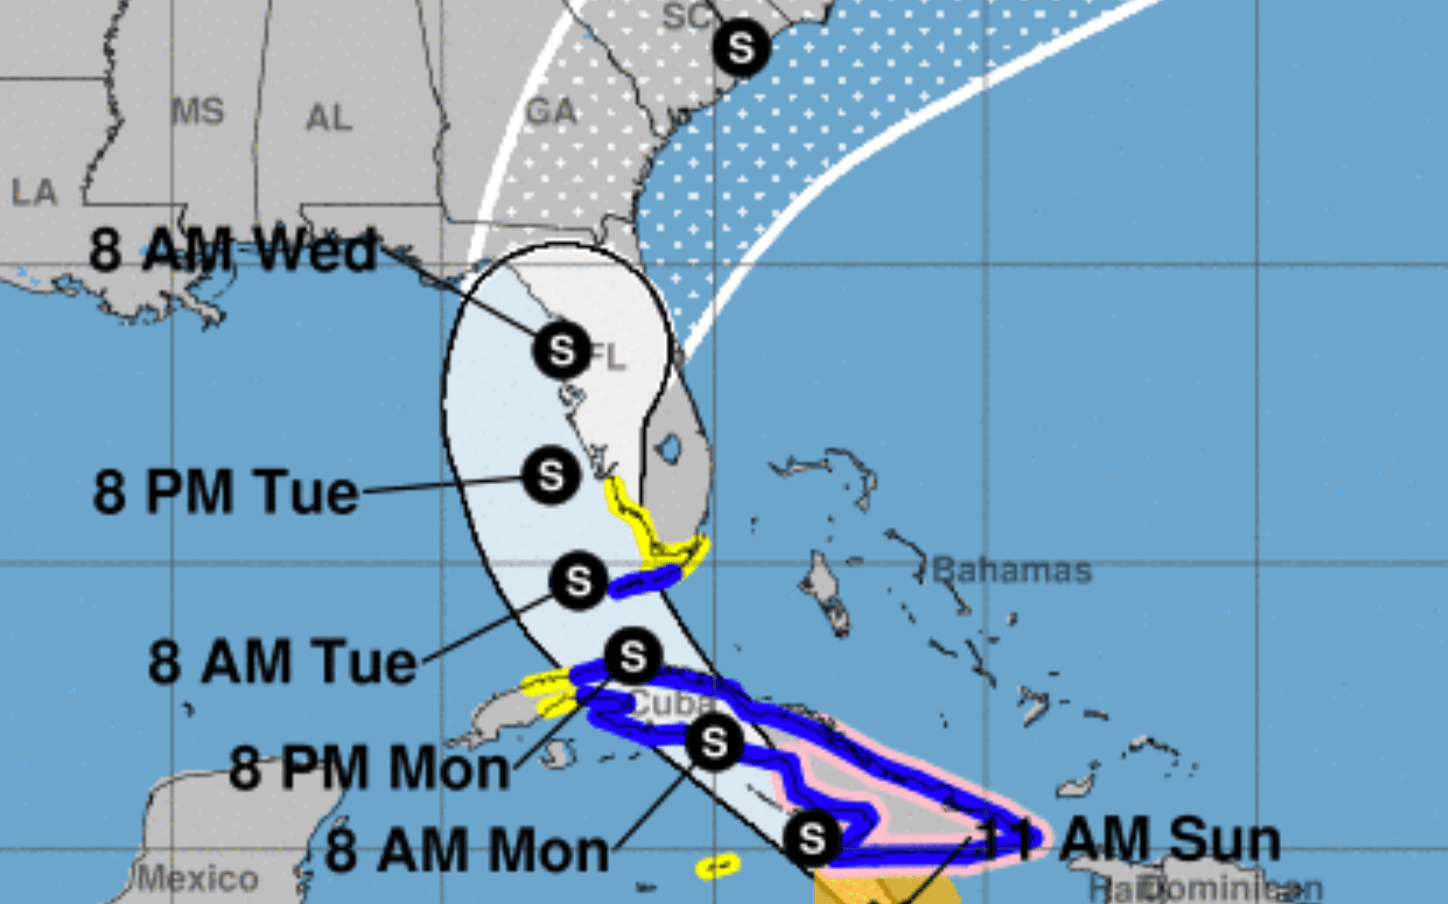 A screen cap from the National Hurricane Center showing the storm track of Tropical Storm Elsa with the cone and times of arrival of the storm over a map of the Southeastern US and colored with places that have storm warnings in the Caribbean.